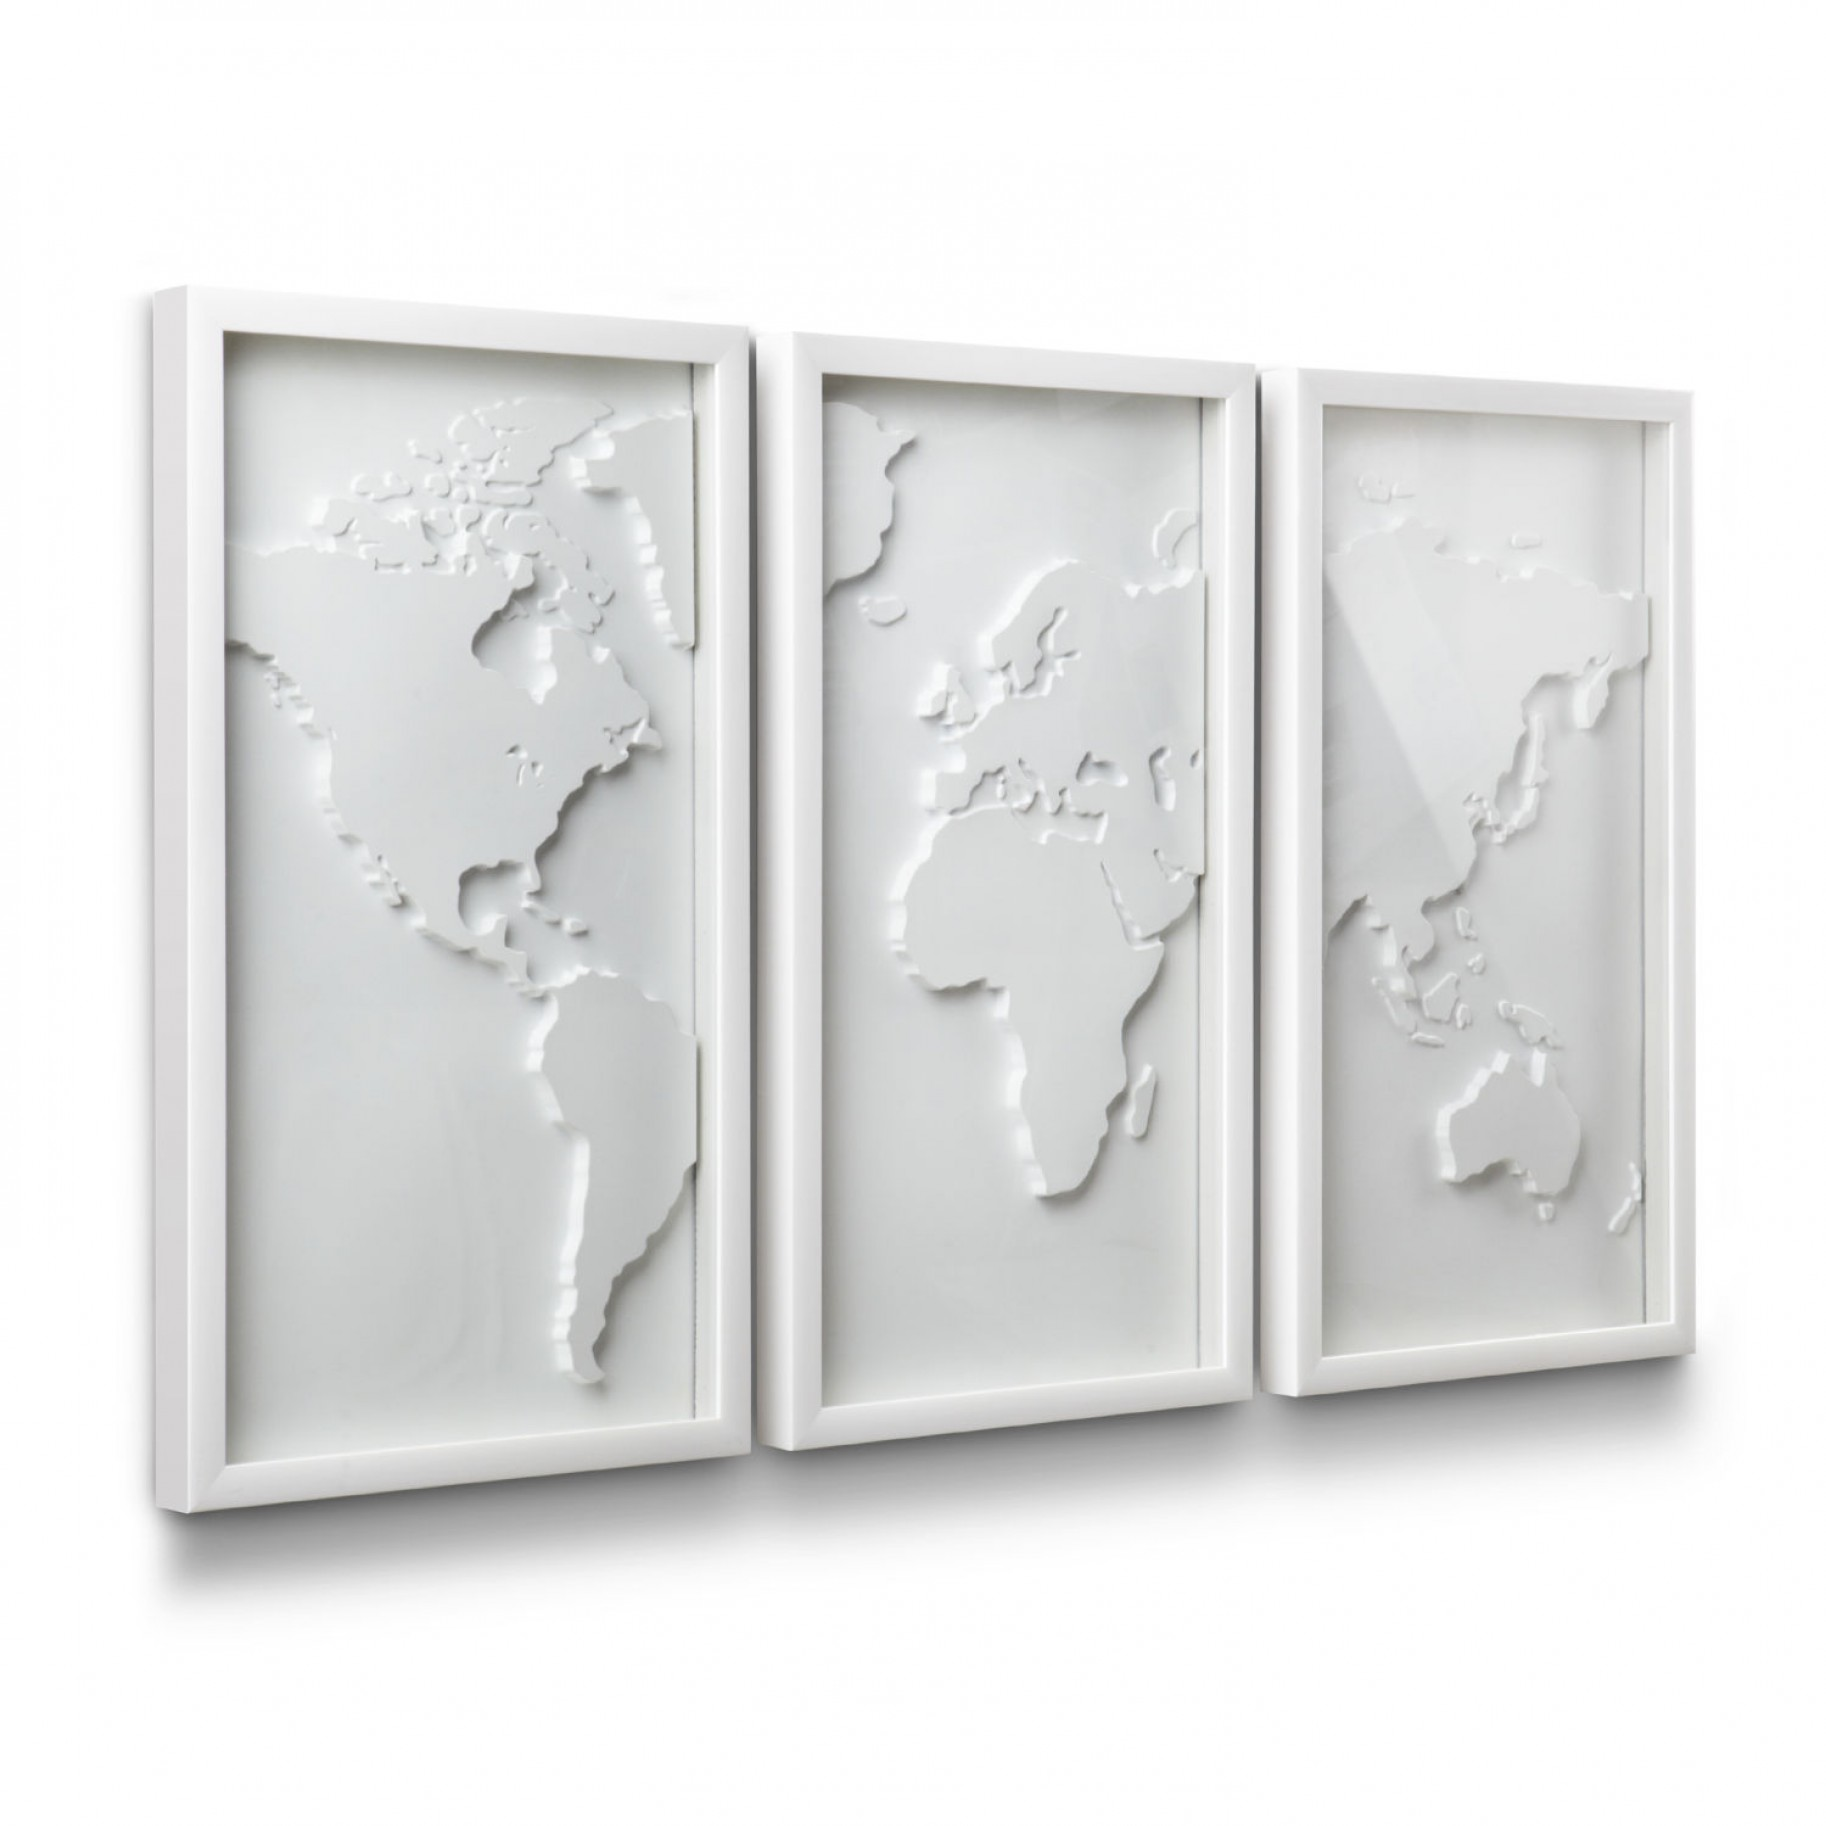 Where Is That World Map From?